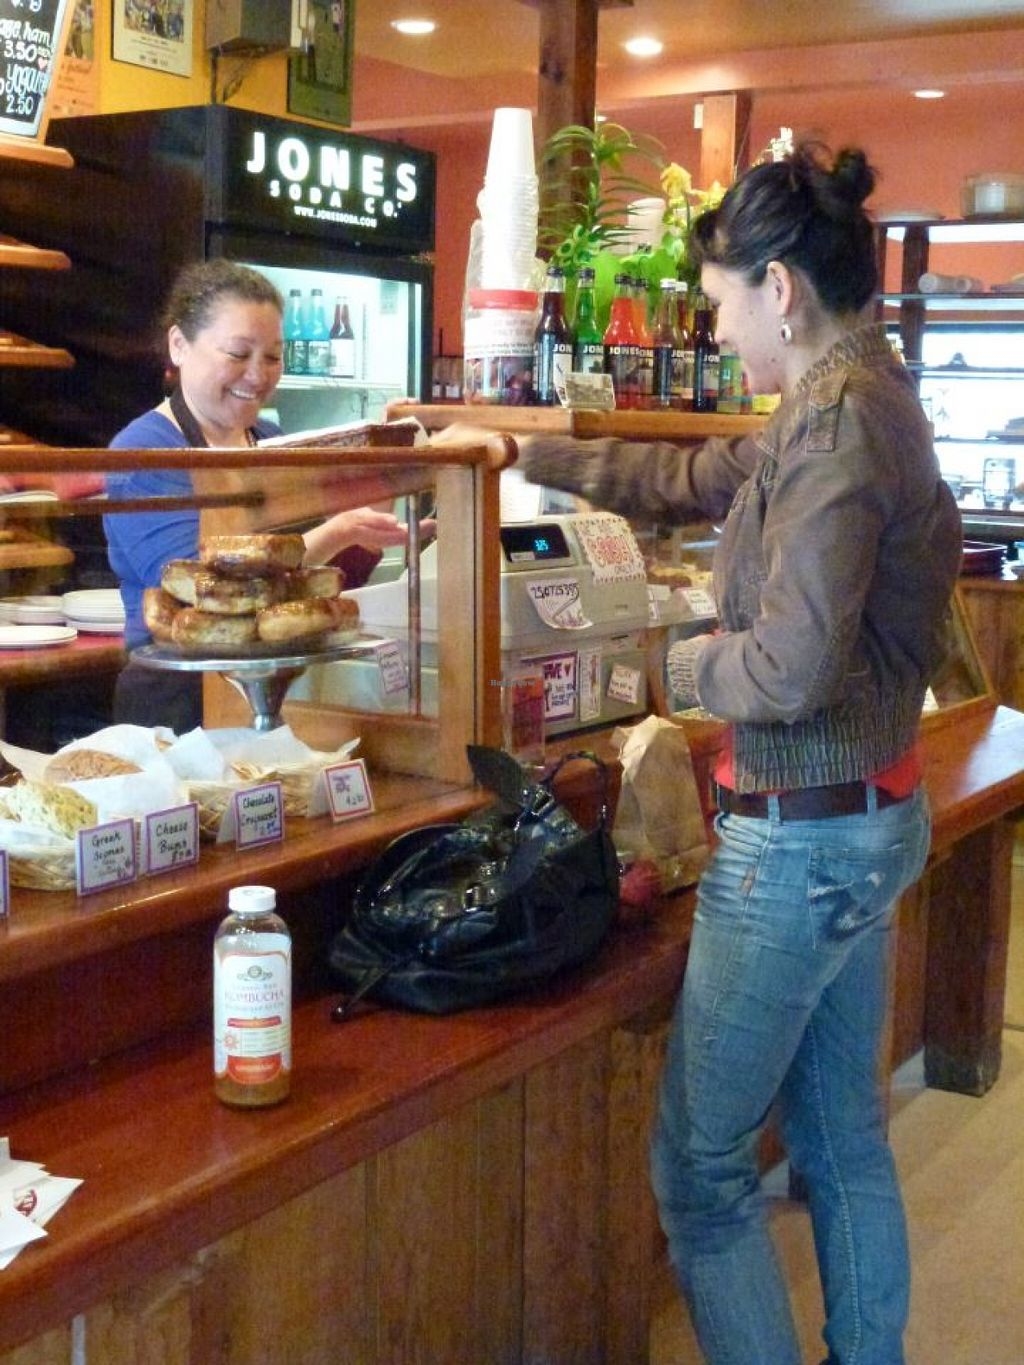 """Photo of Common Loaf Bake Shop  by <a href=""""/members/profile/community"""">community</a> <br/>Common Loaf Bake Shop <br/> June 3, 2016  - <a href='/contact/abuse/image/74571/152188'>Report</a>"""